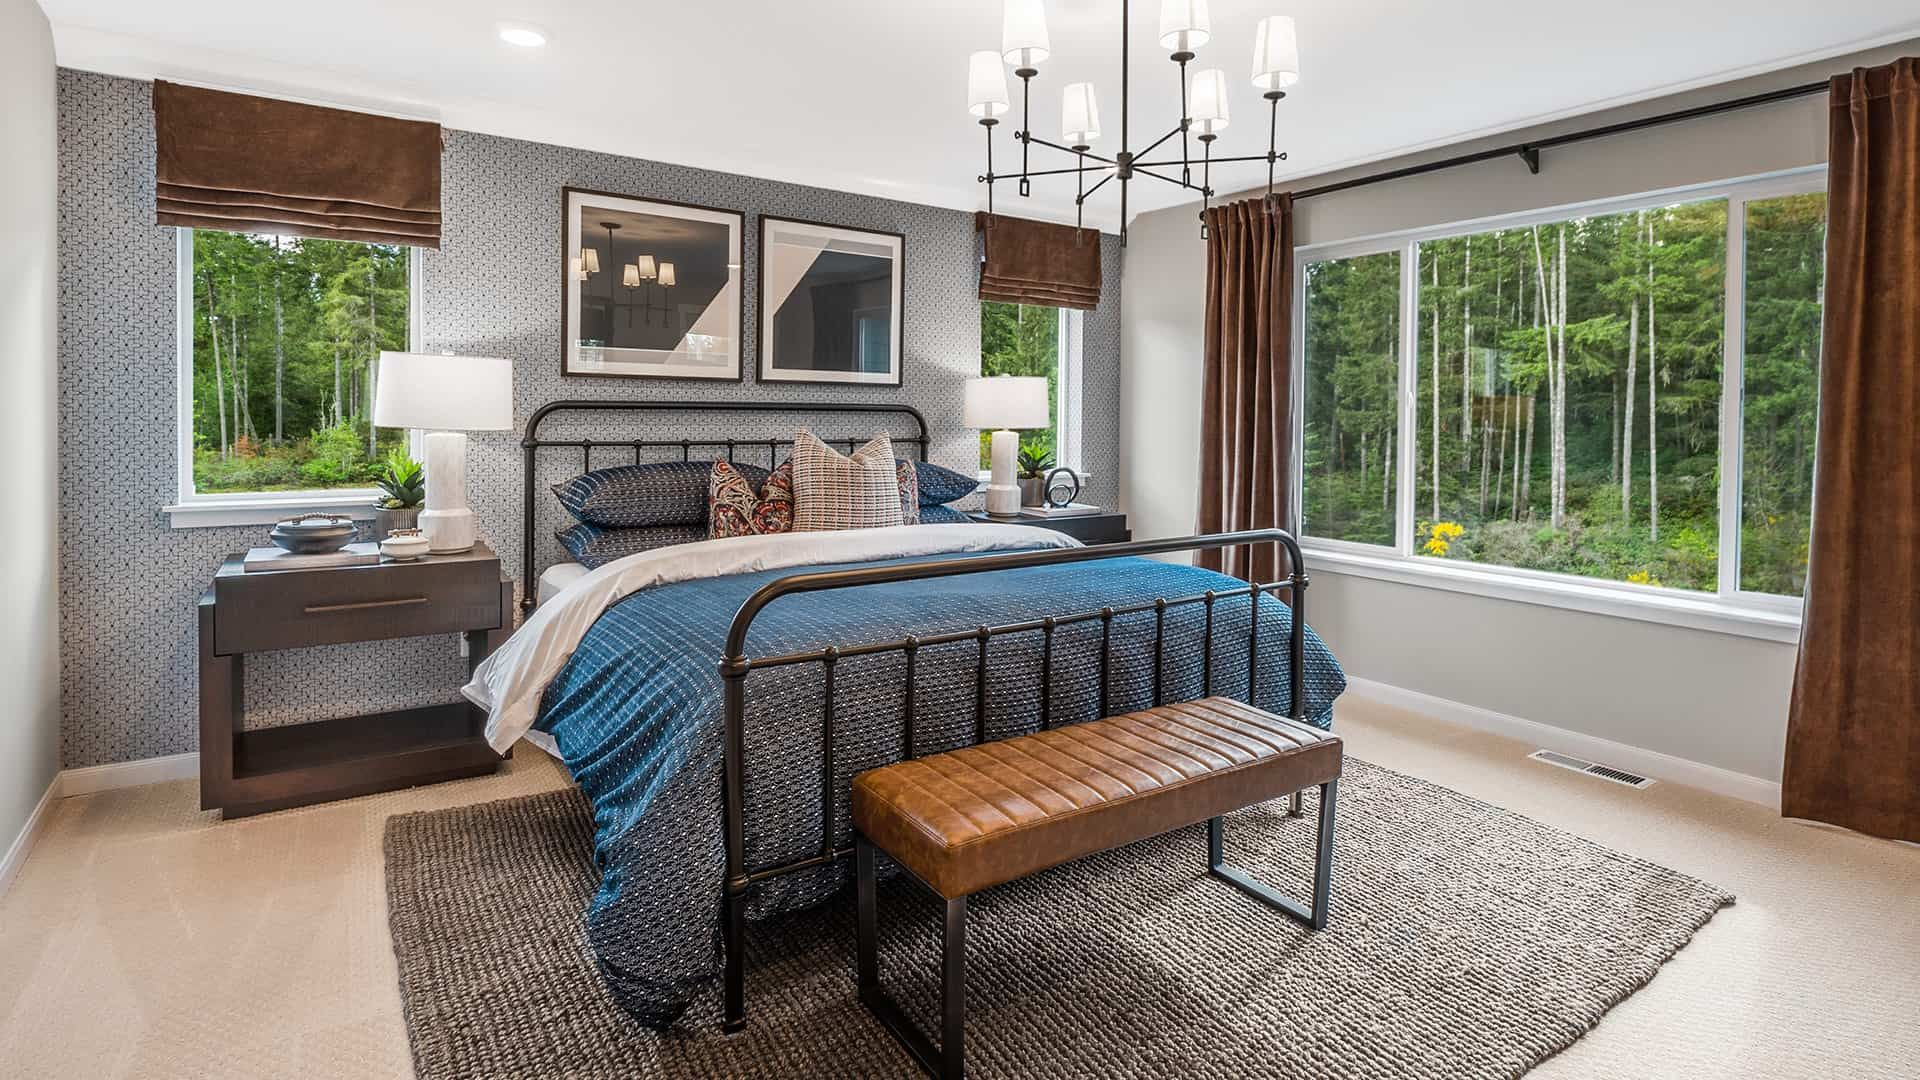 Bedroom featured in the Plan A-240 By Tri Pointe Homes in Bremerton, WA